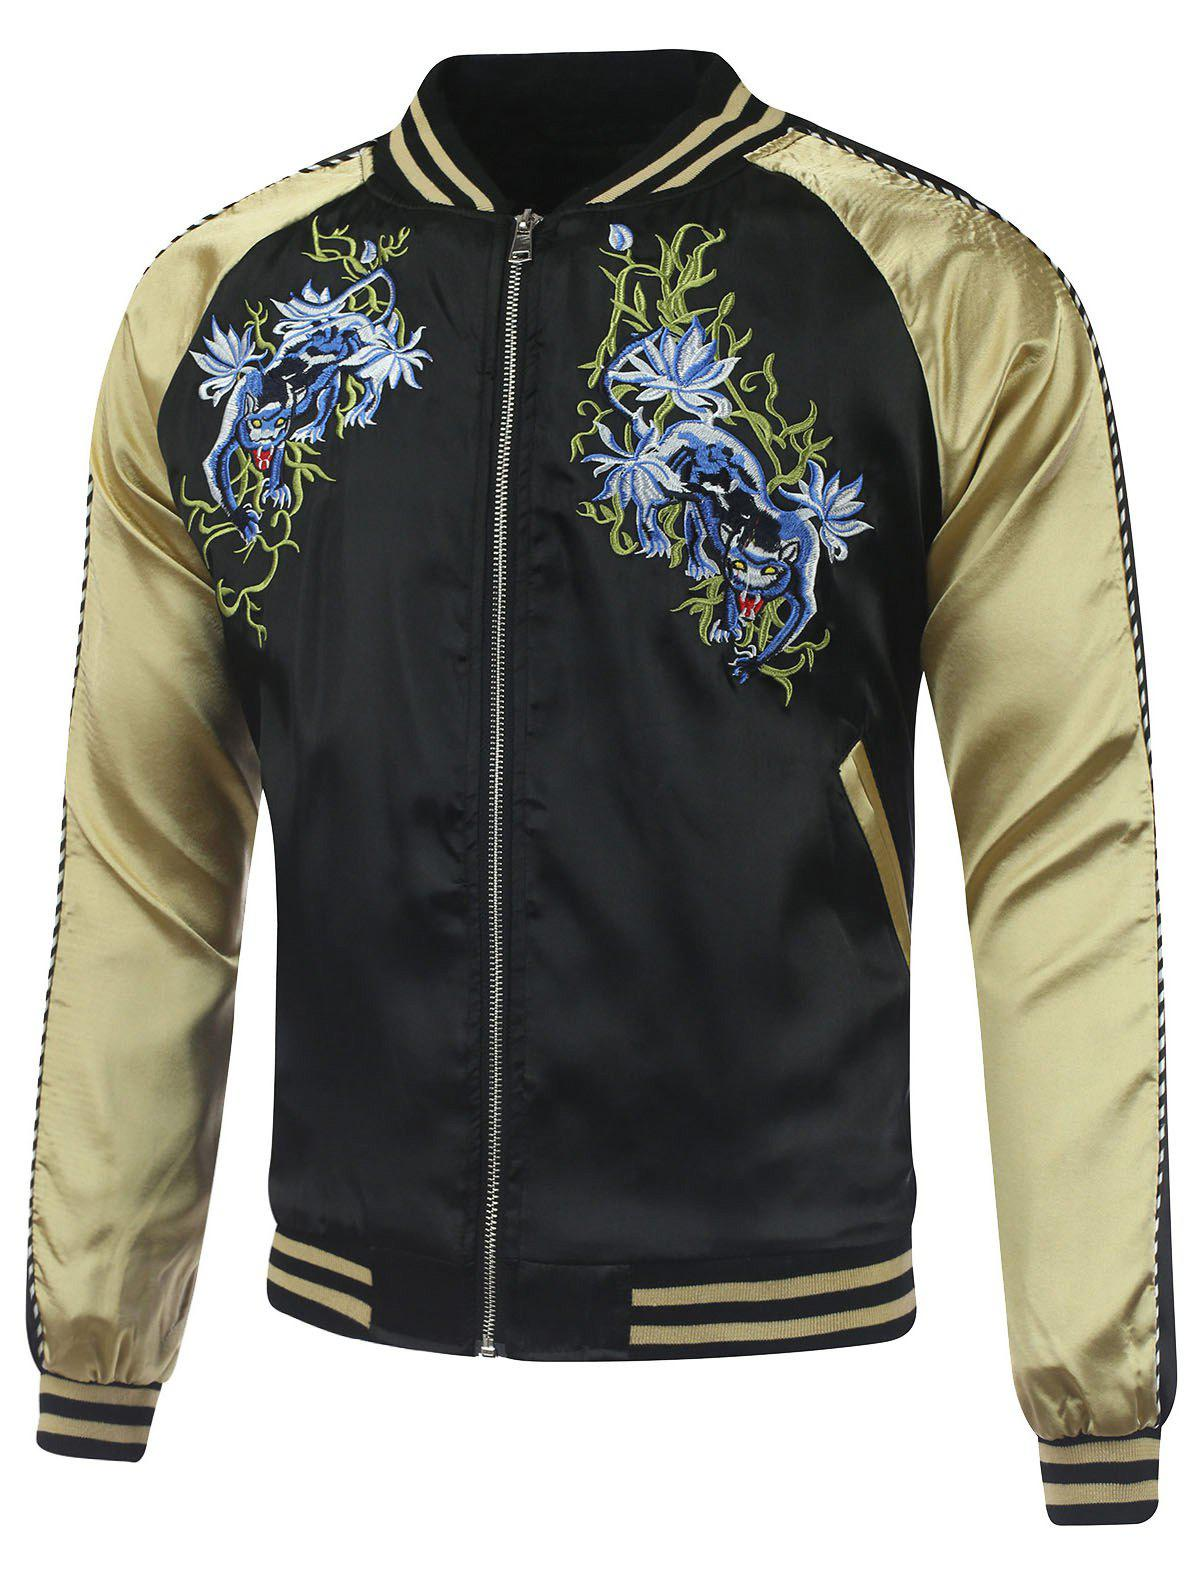 Cheap Kylin Embroidery Raglan Sleeve Souvenir Jacket